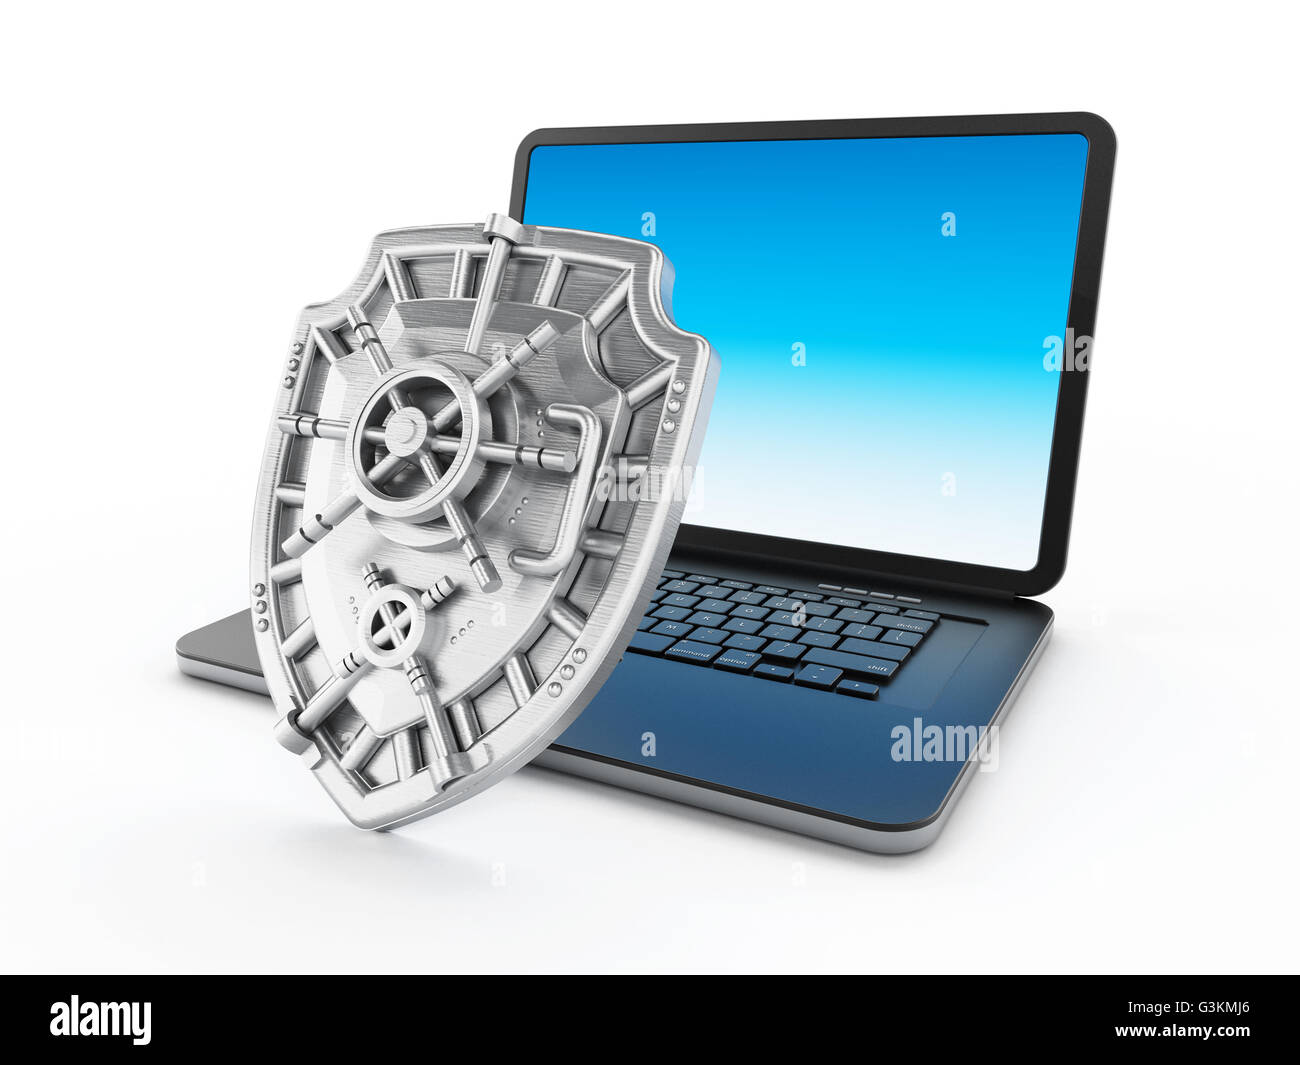 Iron shield protecting laptop computer. 3D illustration. Stock Photo